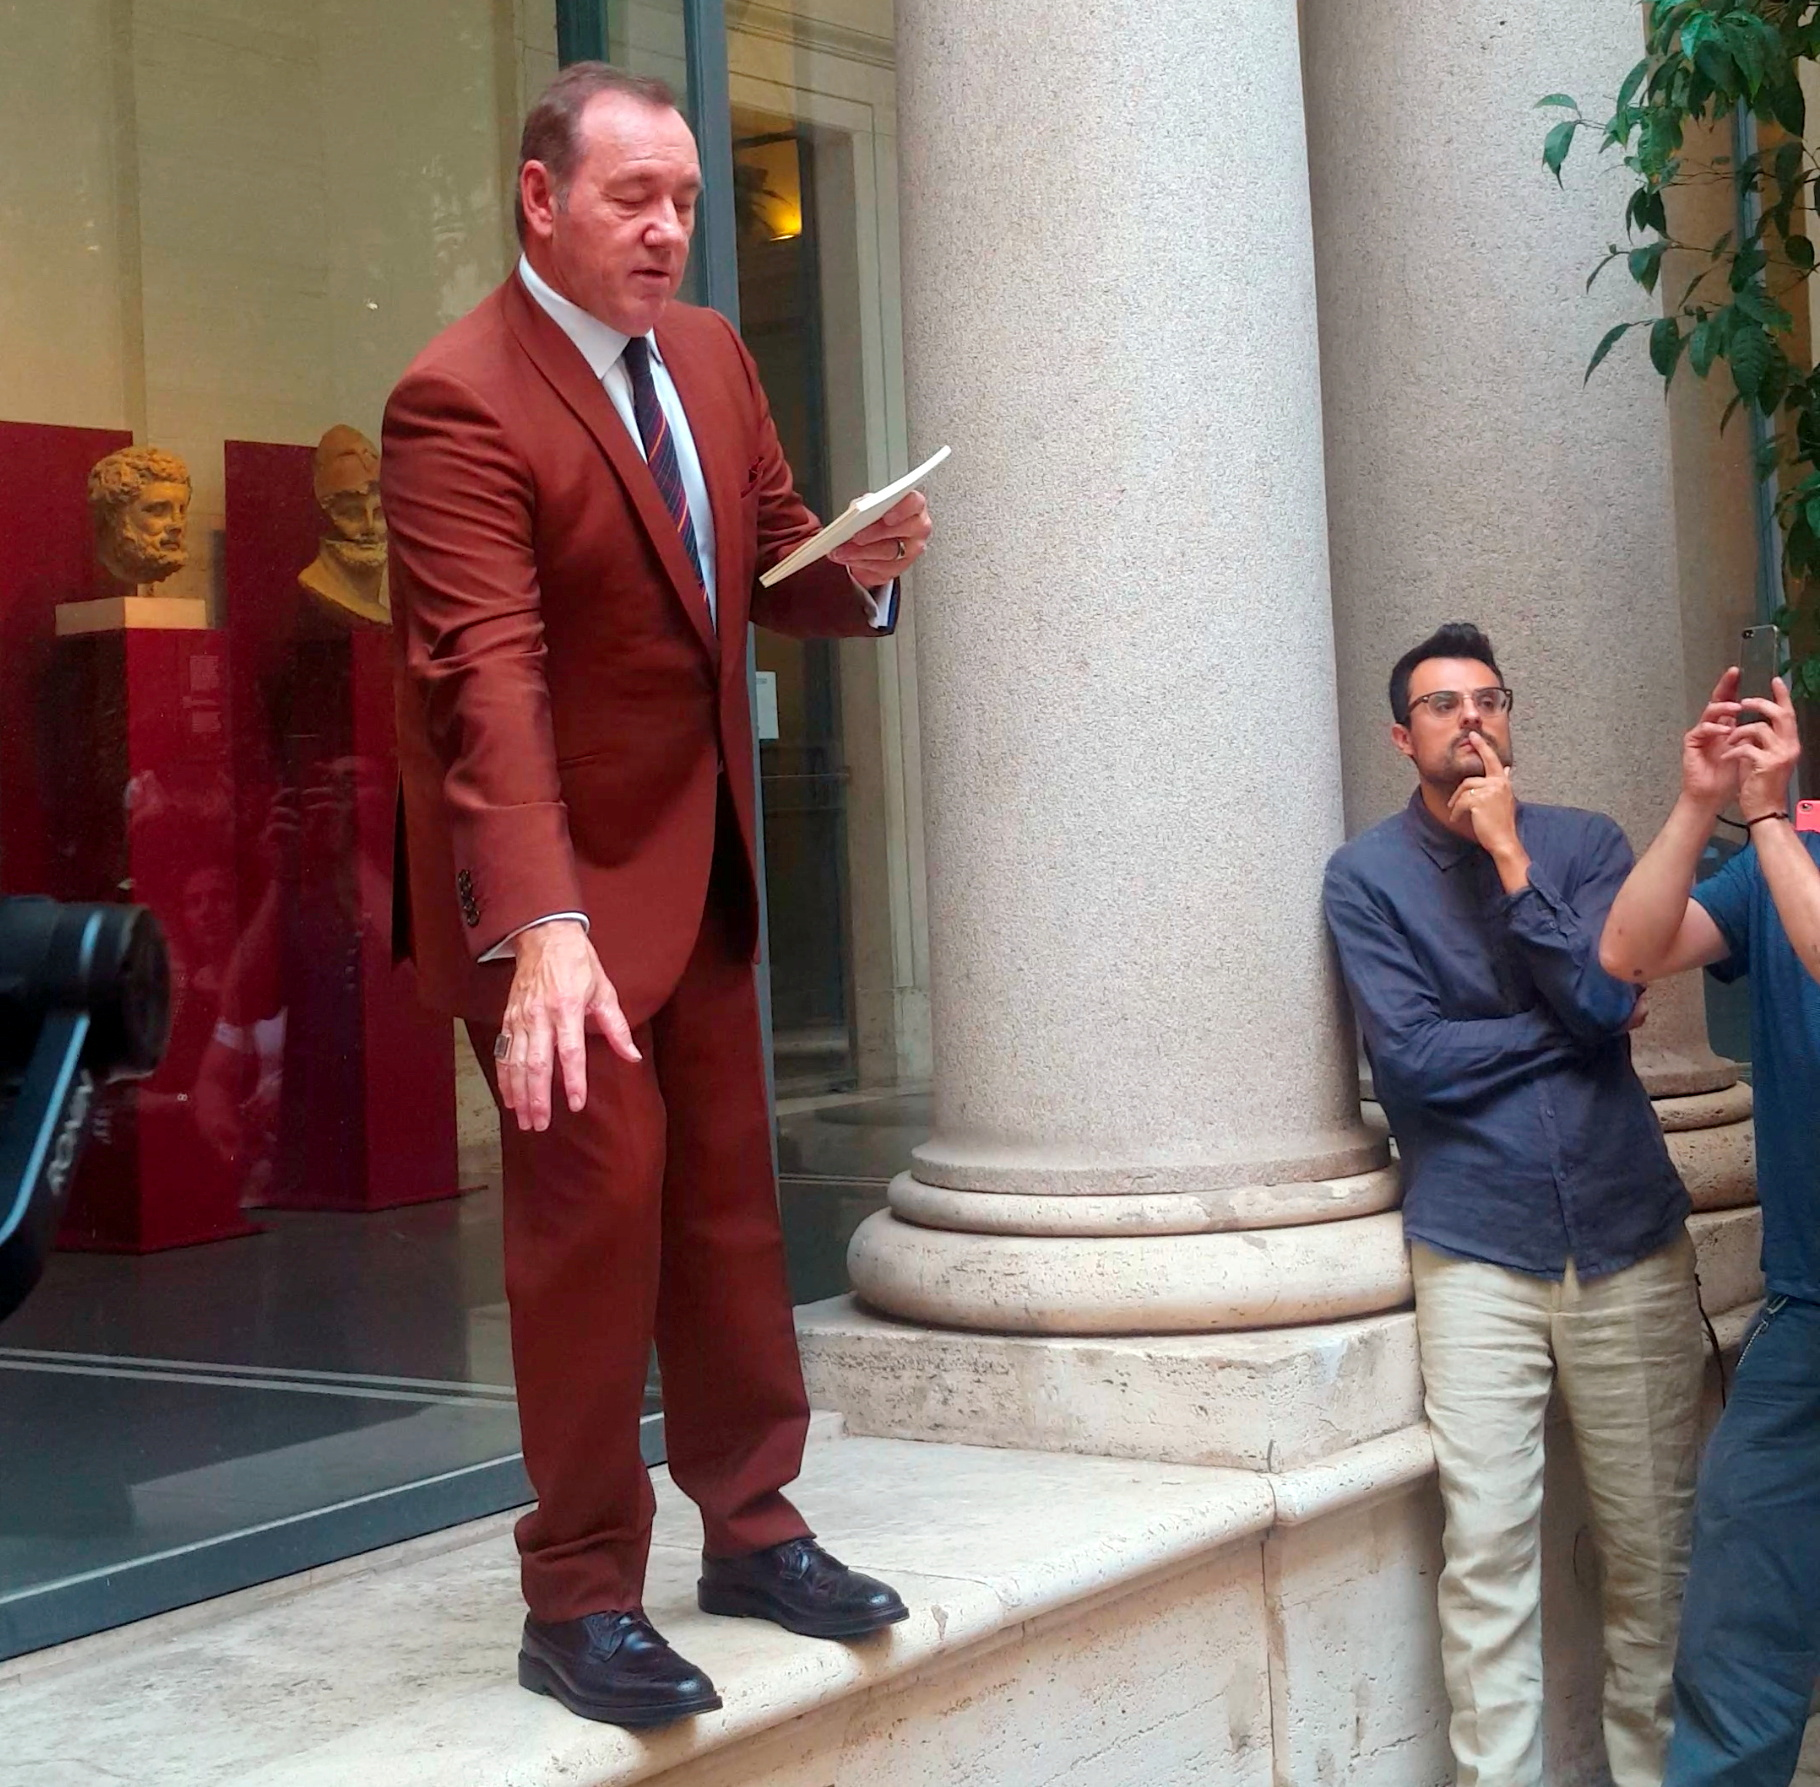 Actor Kevin Spacey reads a poem in front of the public in the courtyard of the Museo Nazionale Romano Palazzo Massimo in Rome, Italy August 3, 2019 in this still image taken from social media video. Antonia Falcone via REUTERS